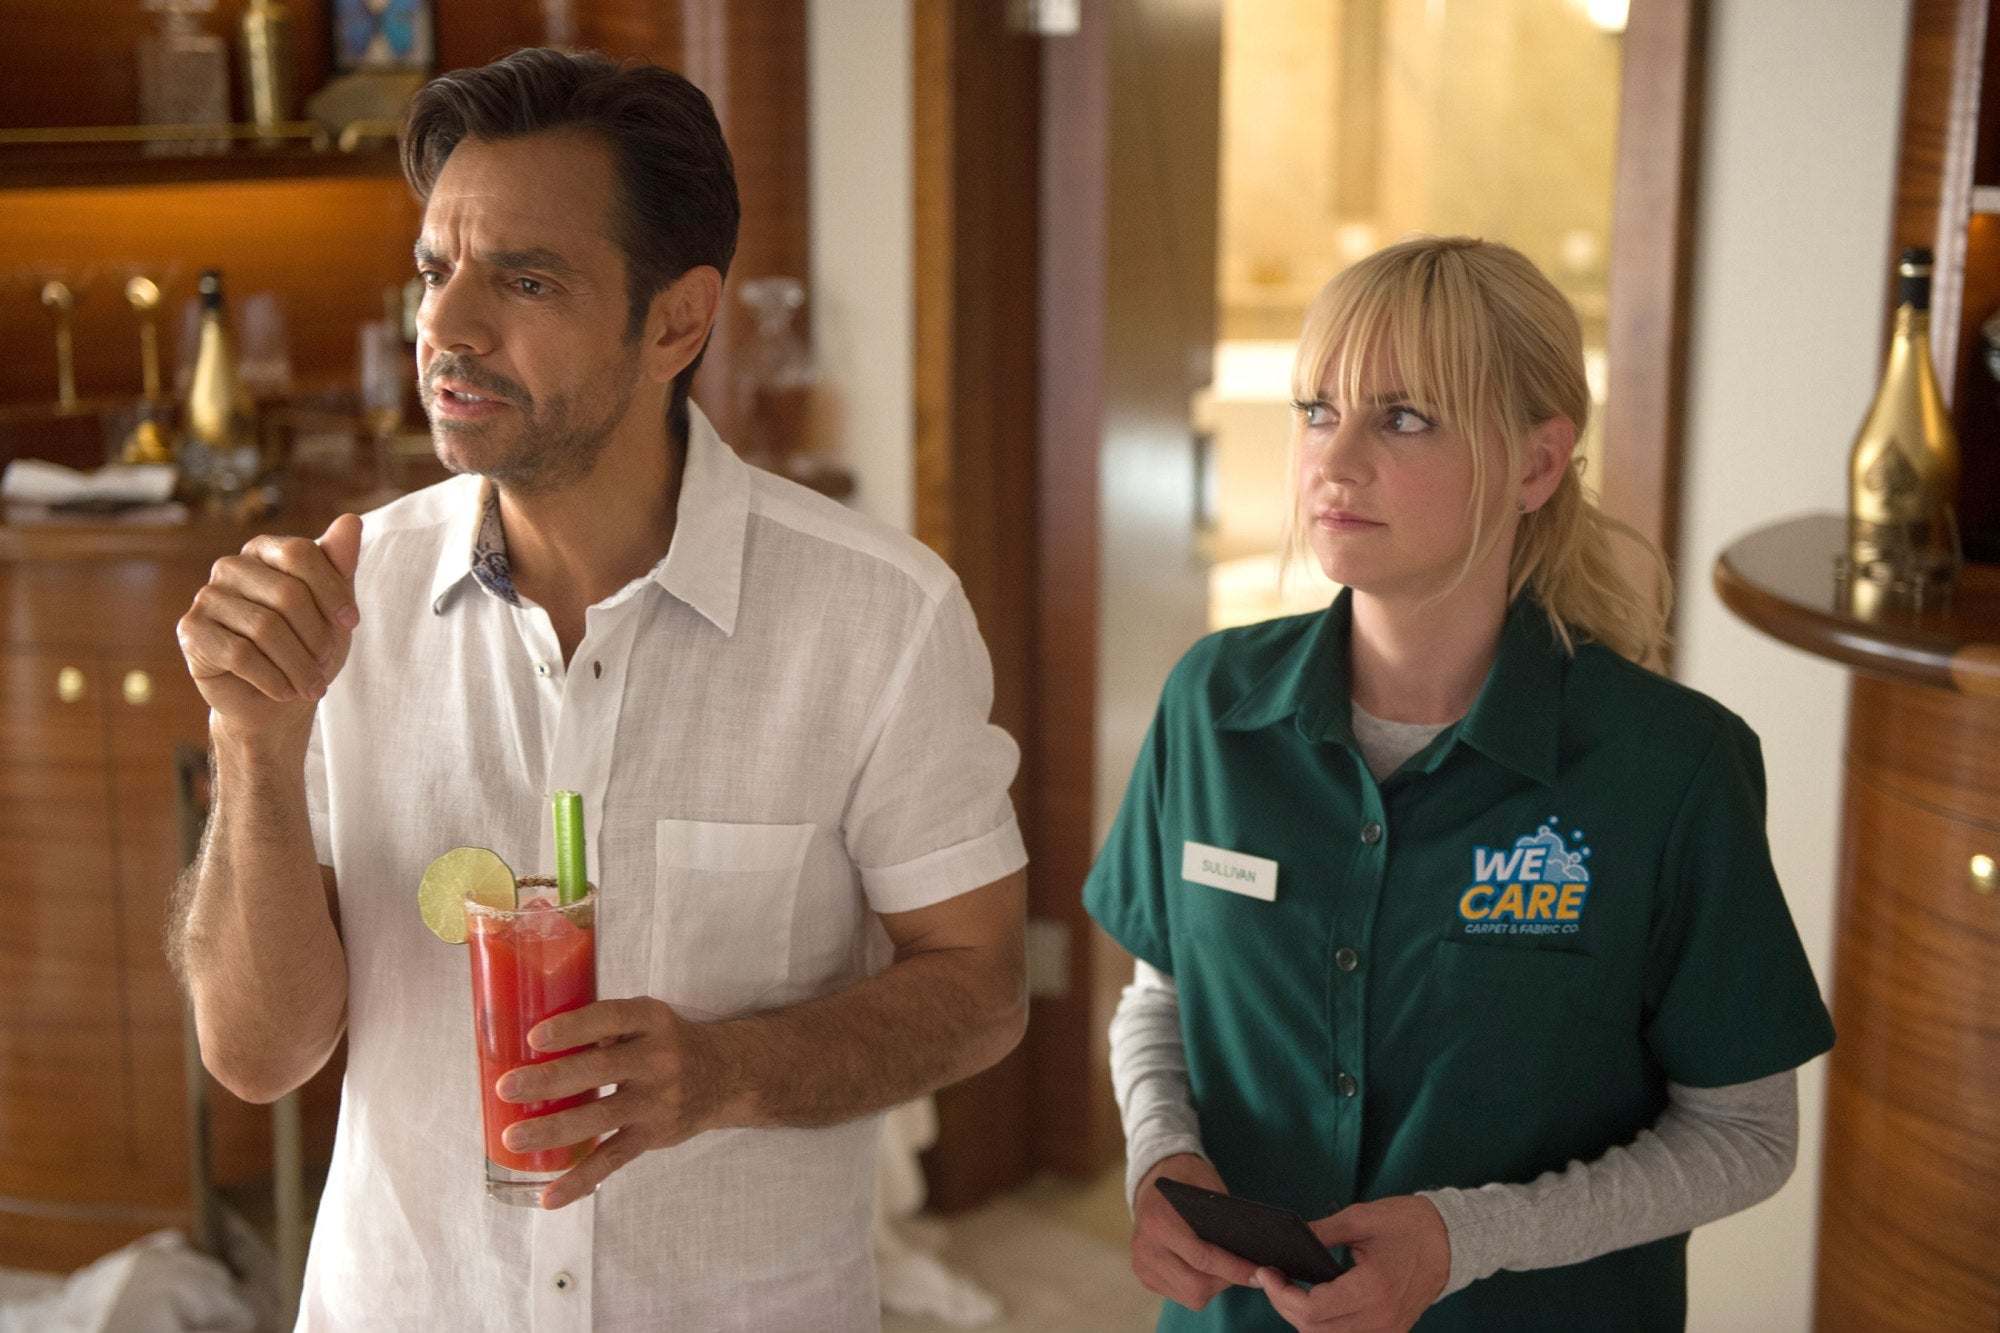 A scene from the film Overboard, 2018